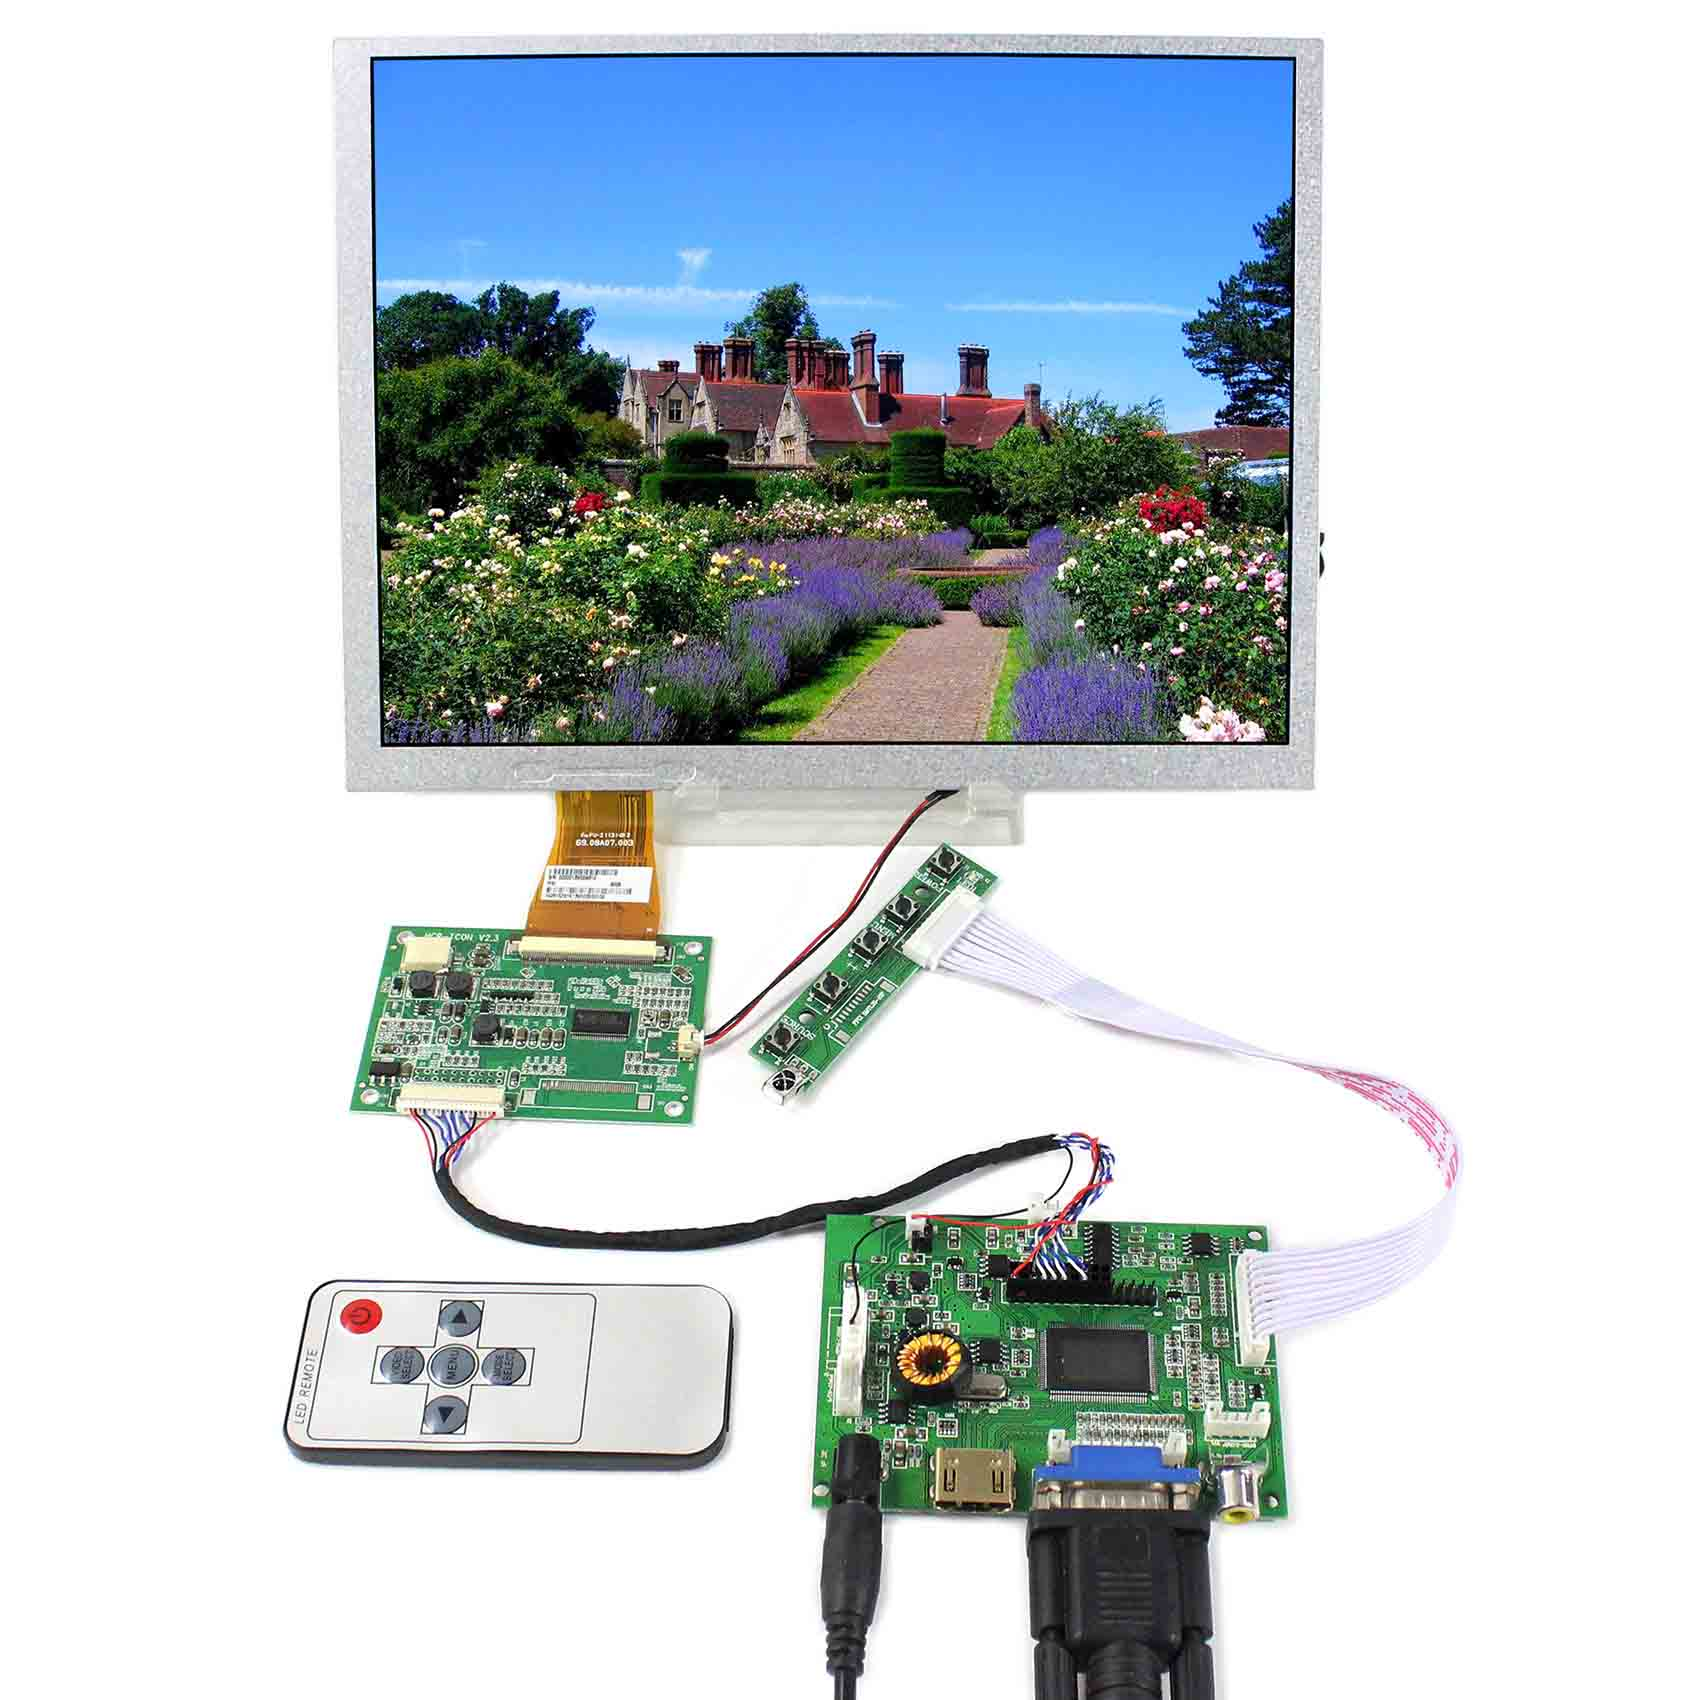 HDMI+VGA+2AV+Audio LCD Controller Board With 10.4inch 800X600 A104SN03-V1 LCD ScreenHDMI+VGA+2AV+Audio LCD Controller Board With 10.4inch 800X600 A104SN03-V1 LCD Screen